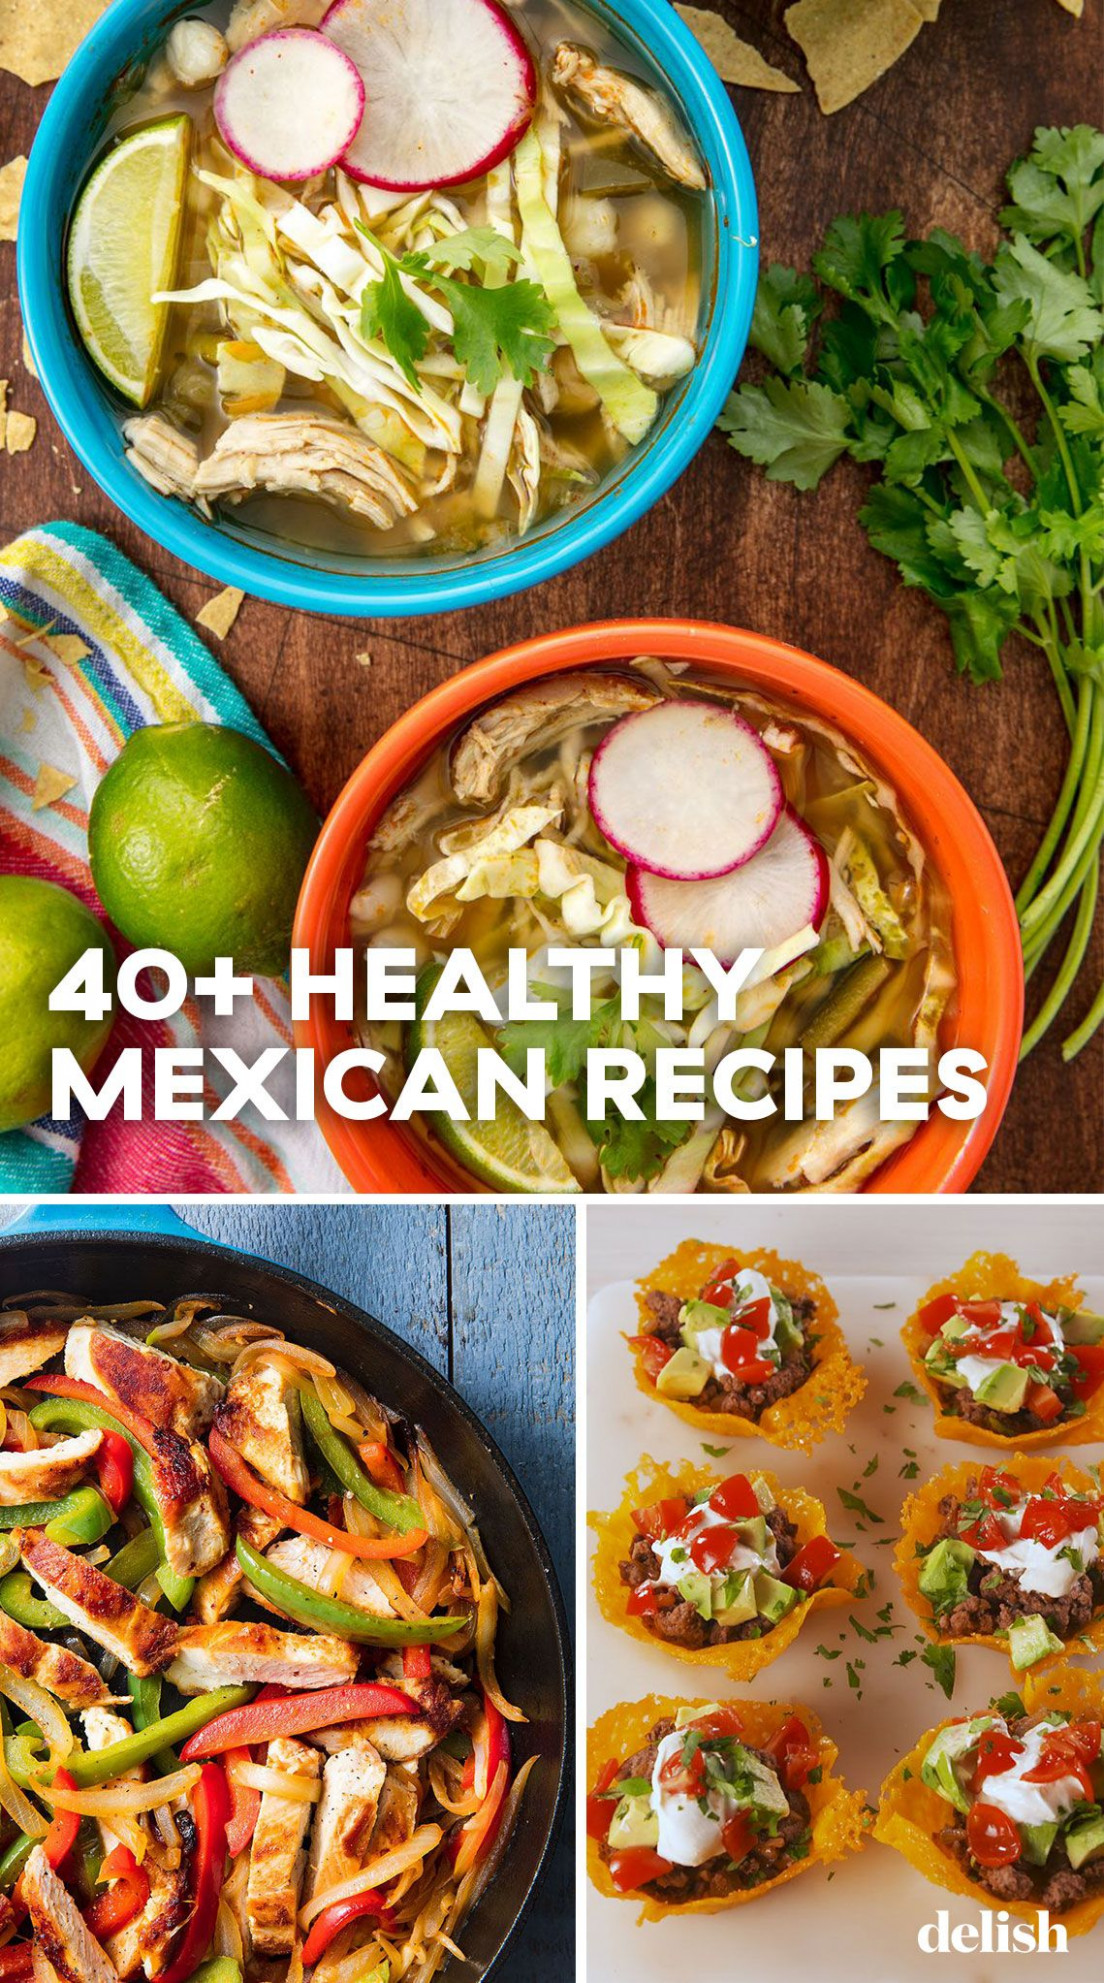 10+ Best Healthy Mexican Food Recipes - healthy recipes delish